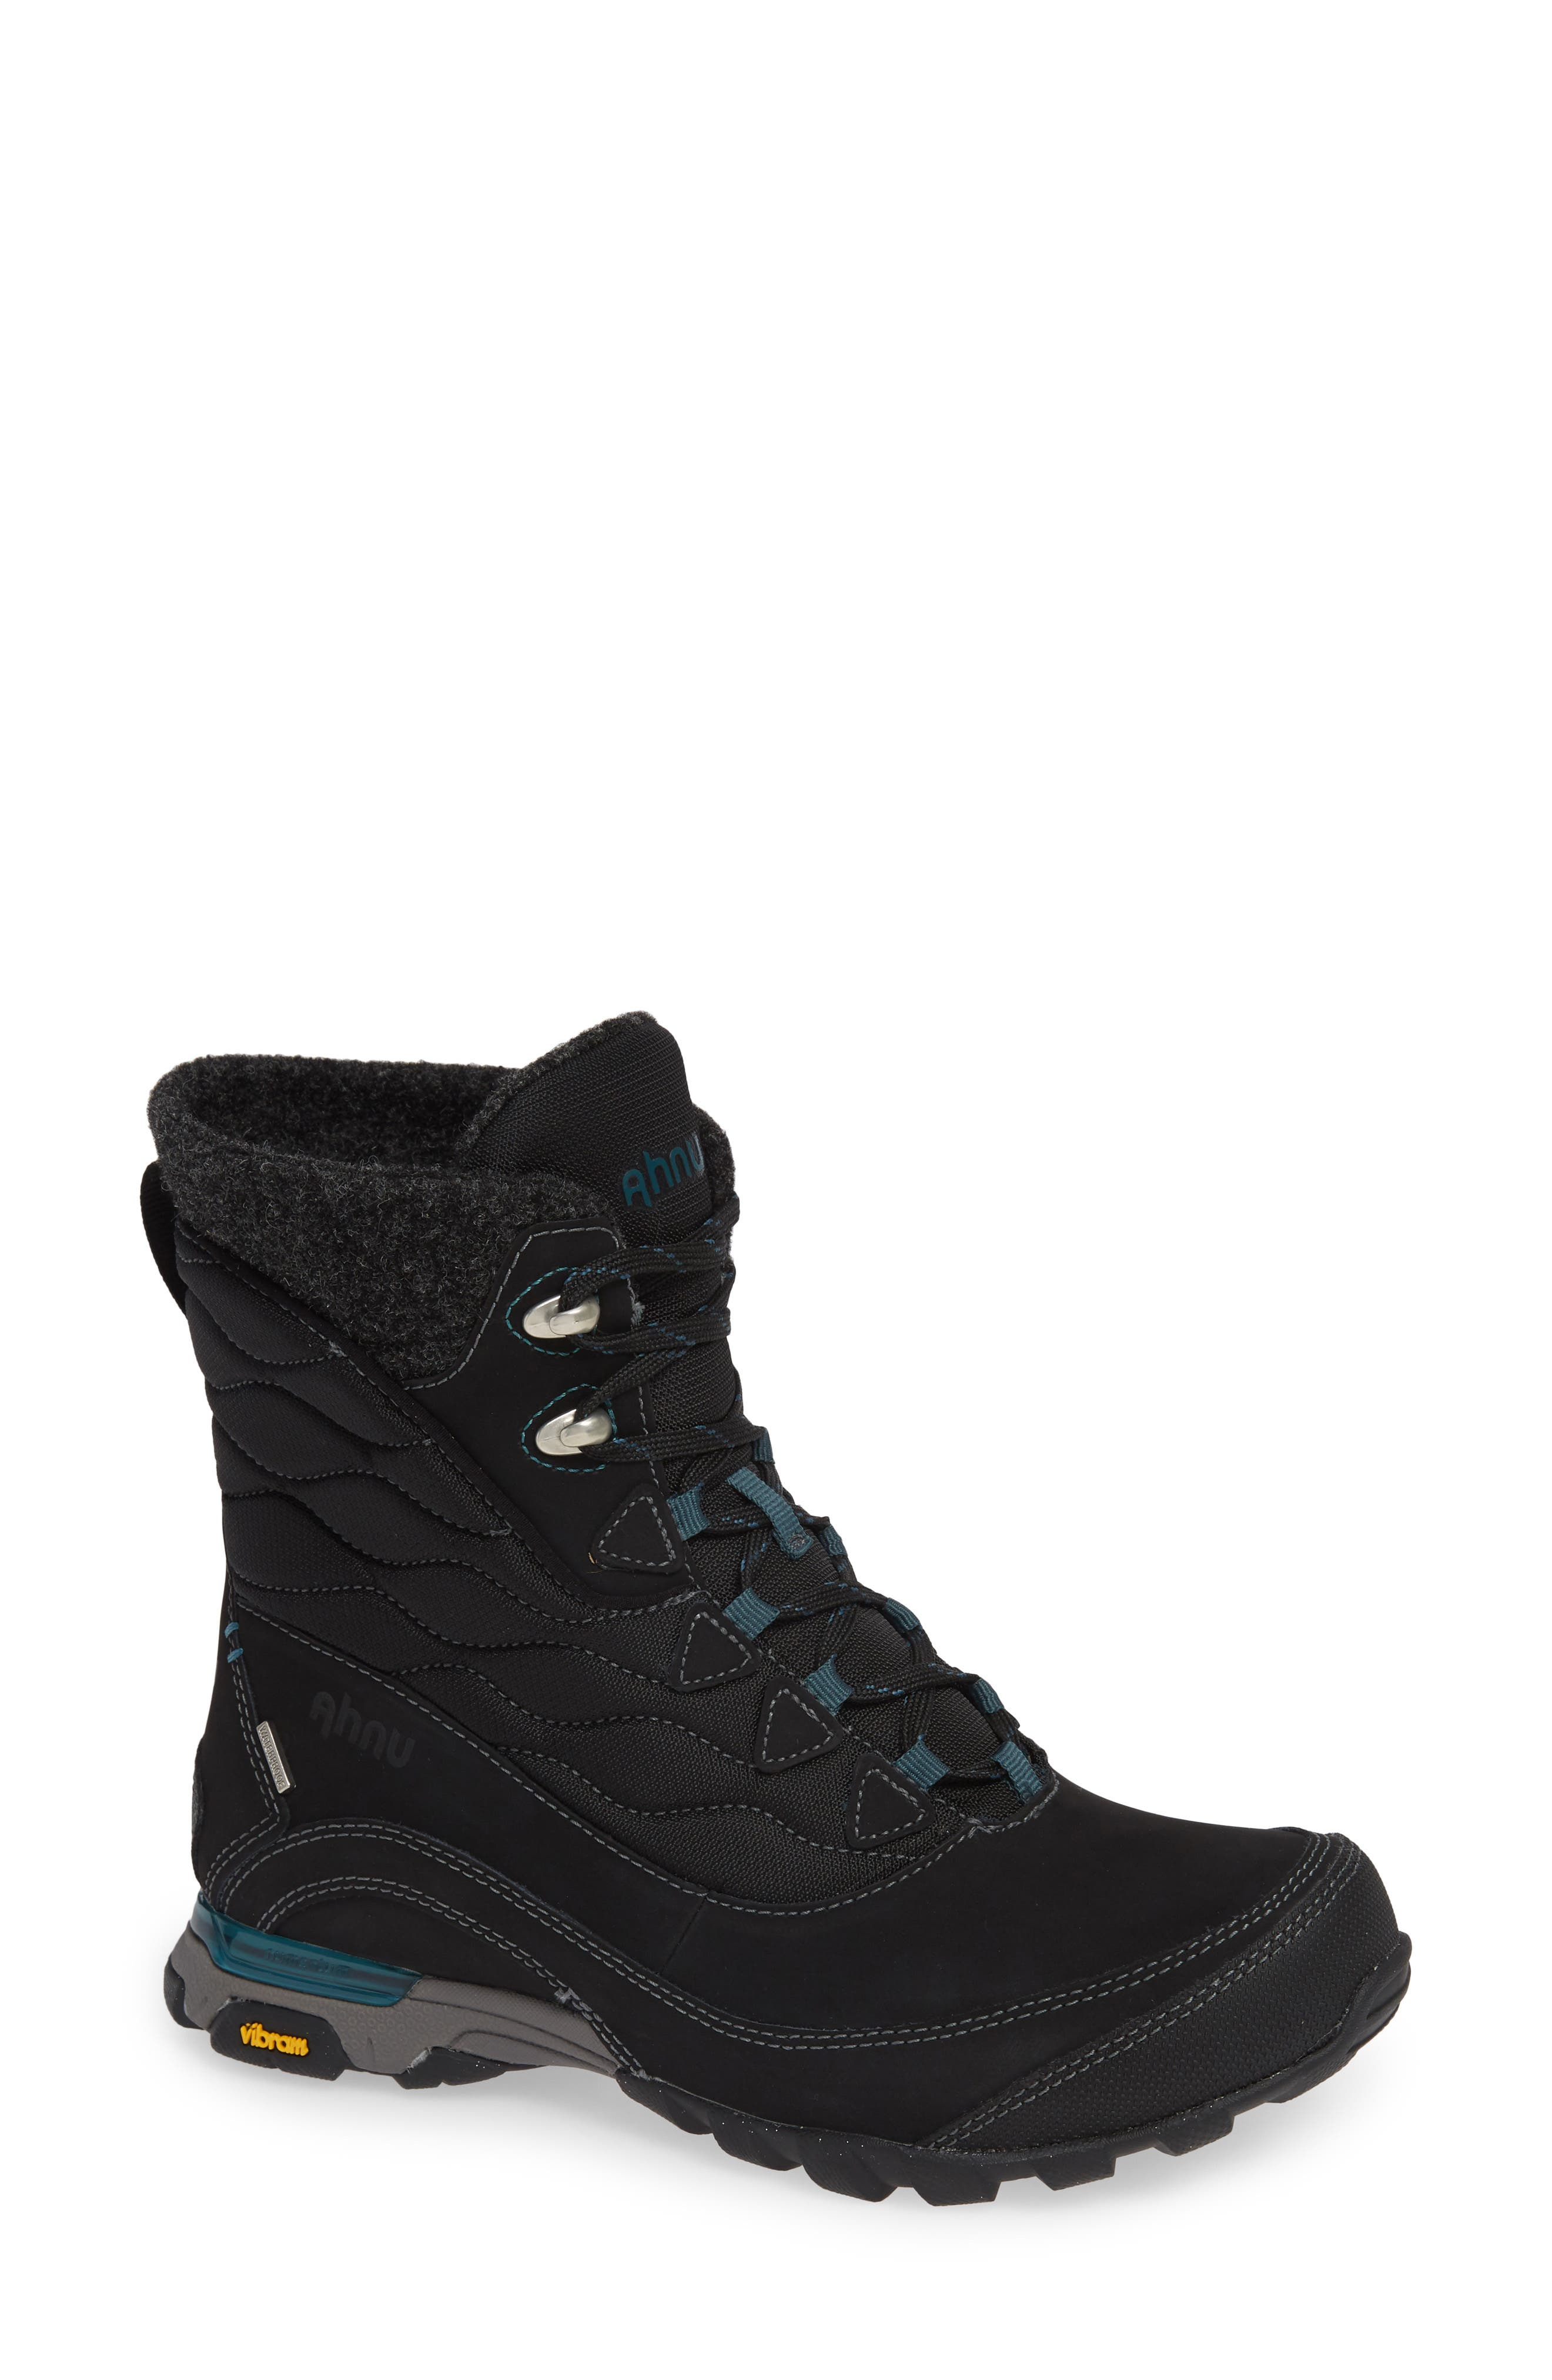 TEVA Sugarfrost Insulated Waterproof Boot in Black Leather